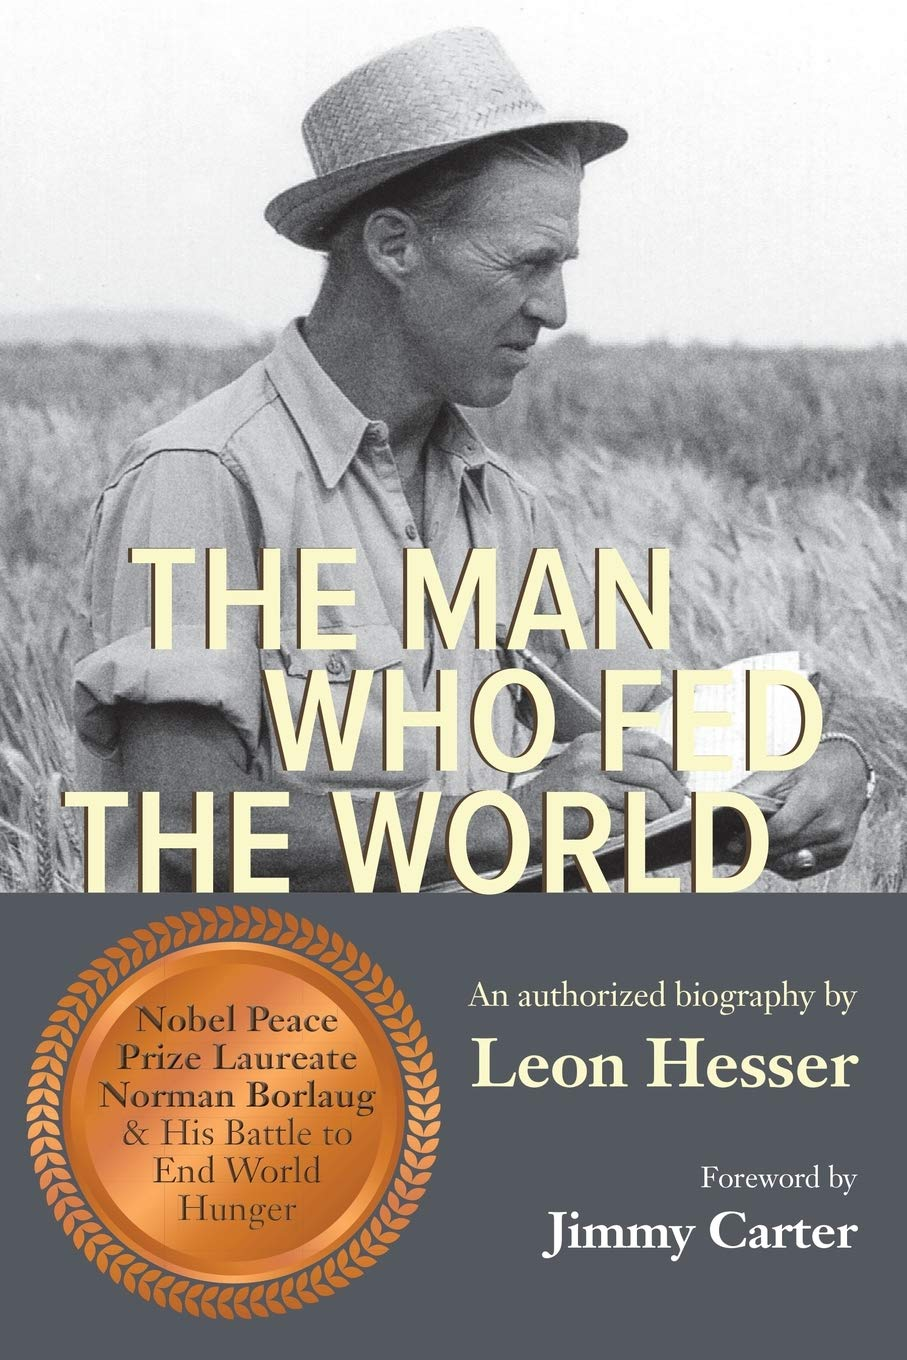 Image OfThe Man Who Fed The World